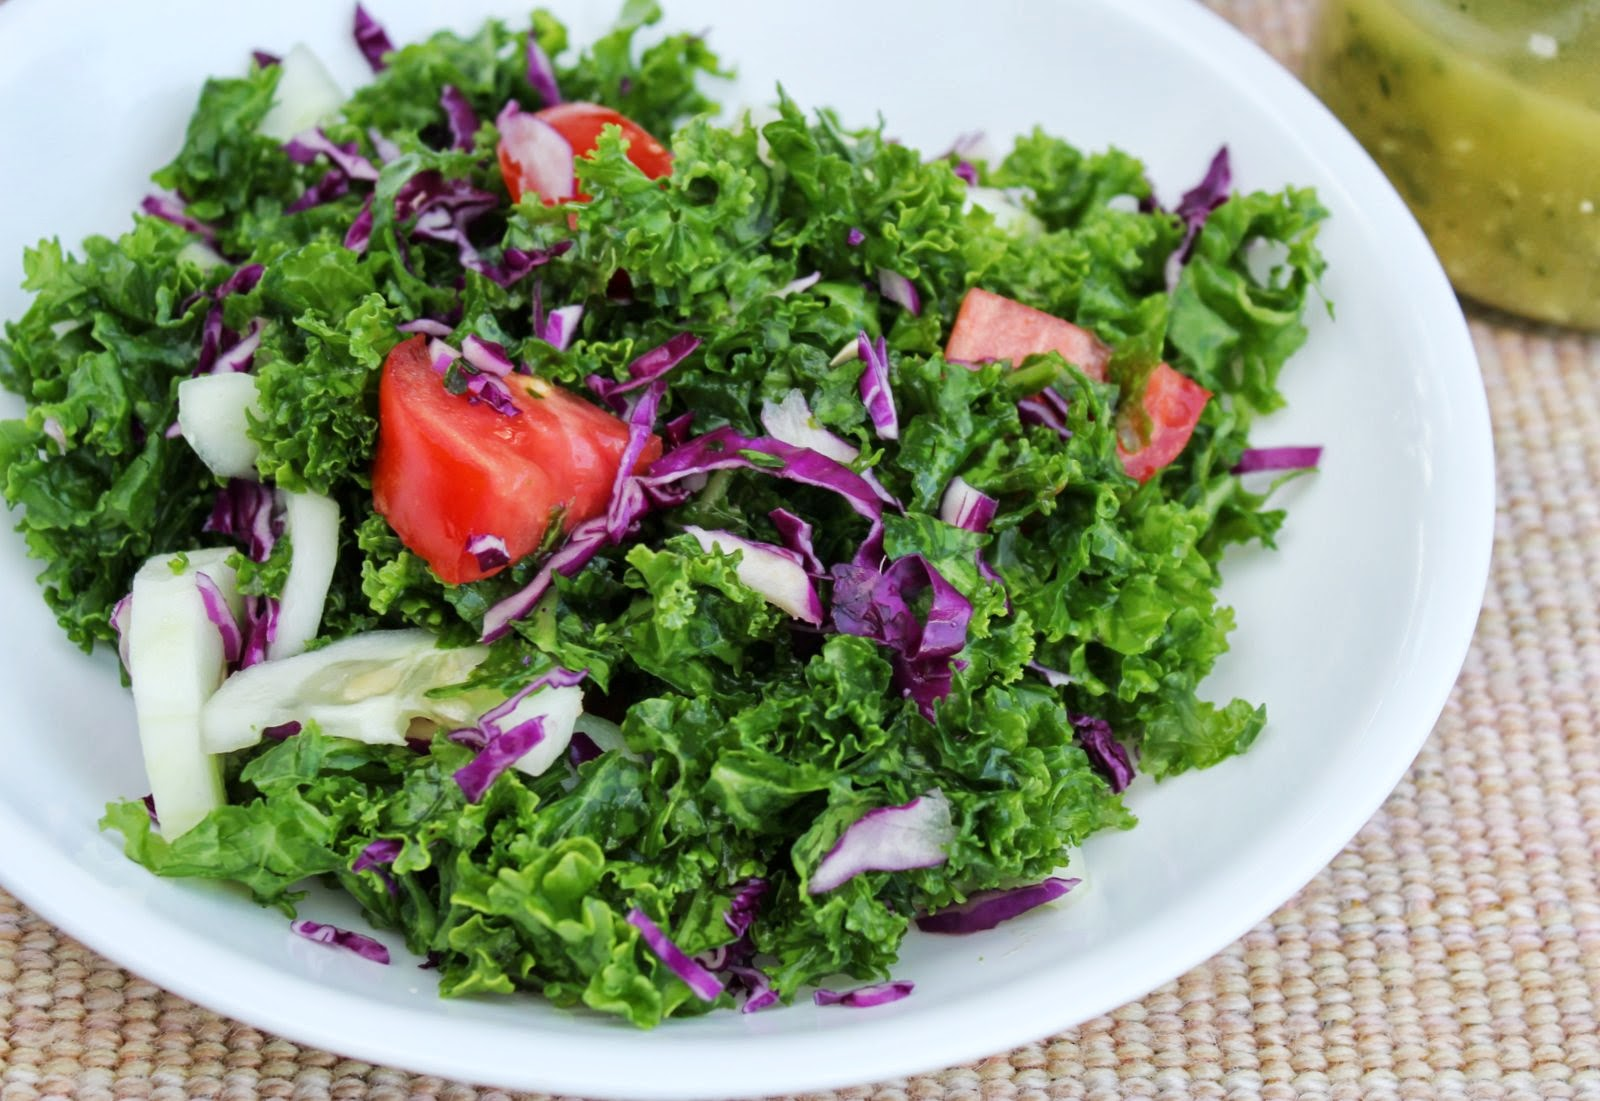 paleo kale salad with cilantro lime salad dressing